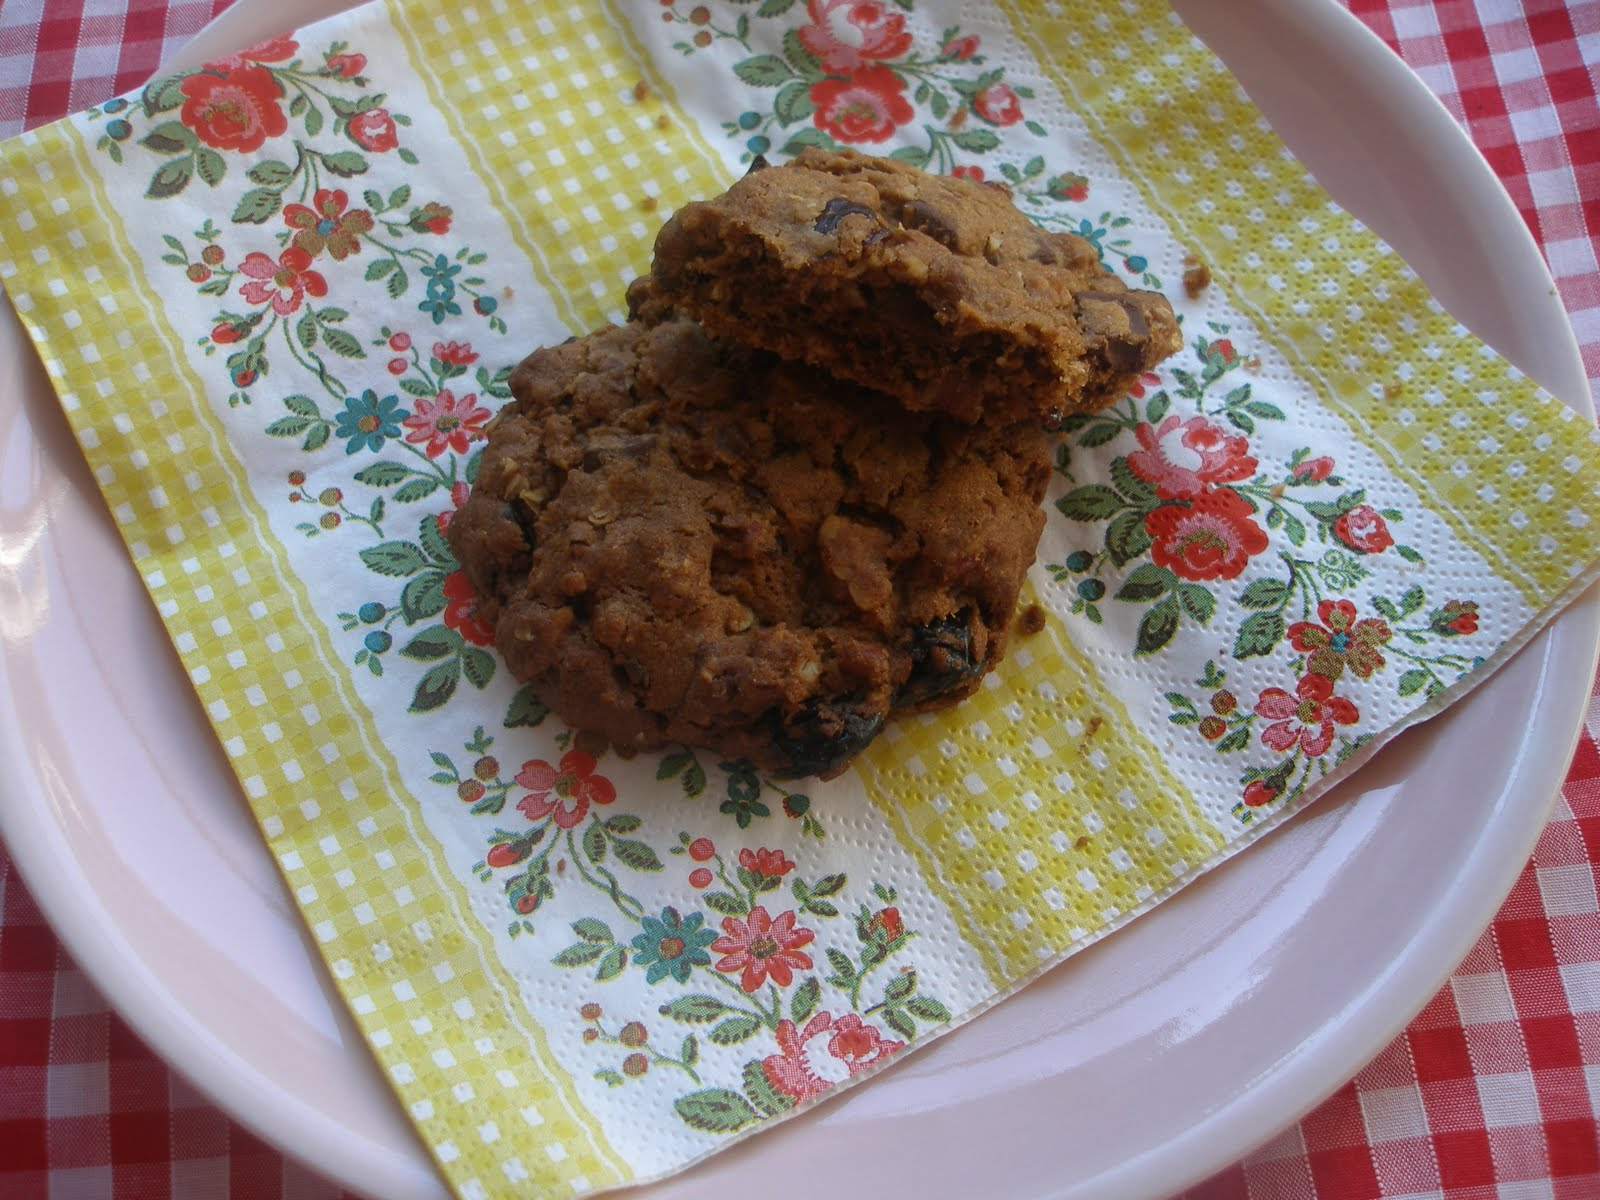 ... meringues: chocolate chip oatmeal cookies, with cherries and pecans